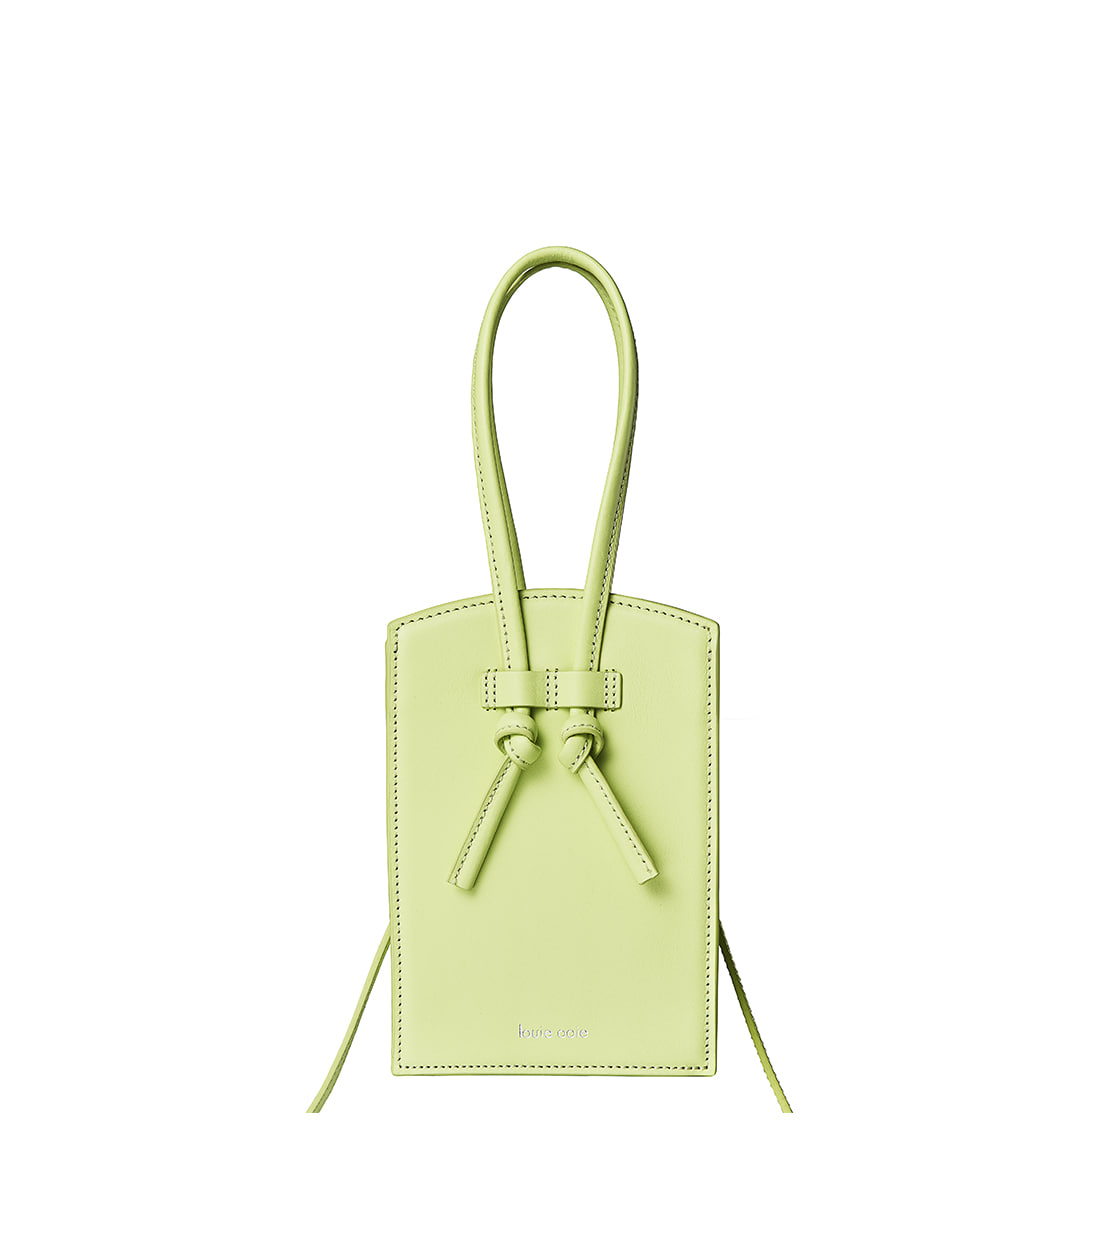 peggy bag - neon green [refurb 50%]